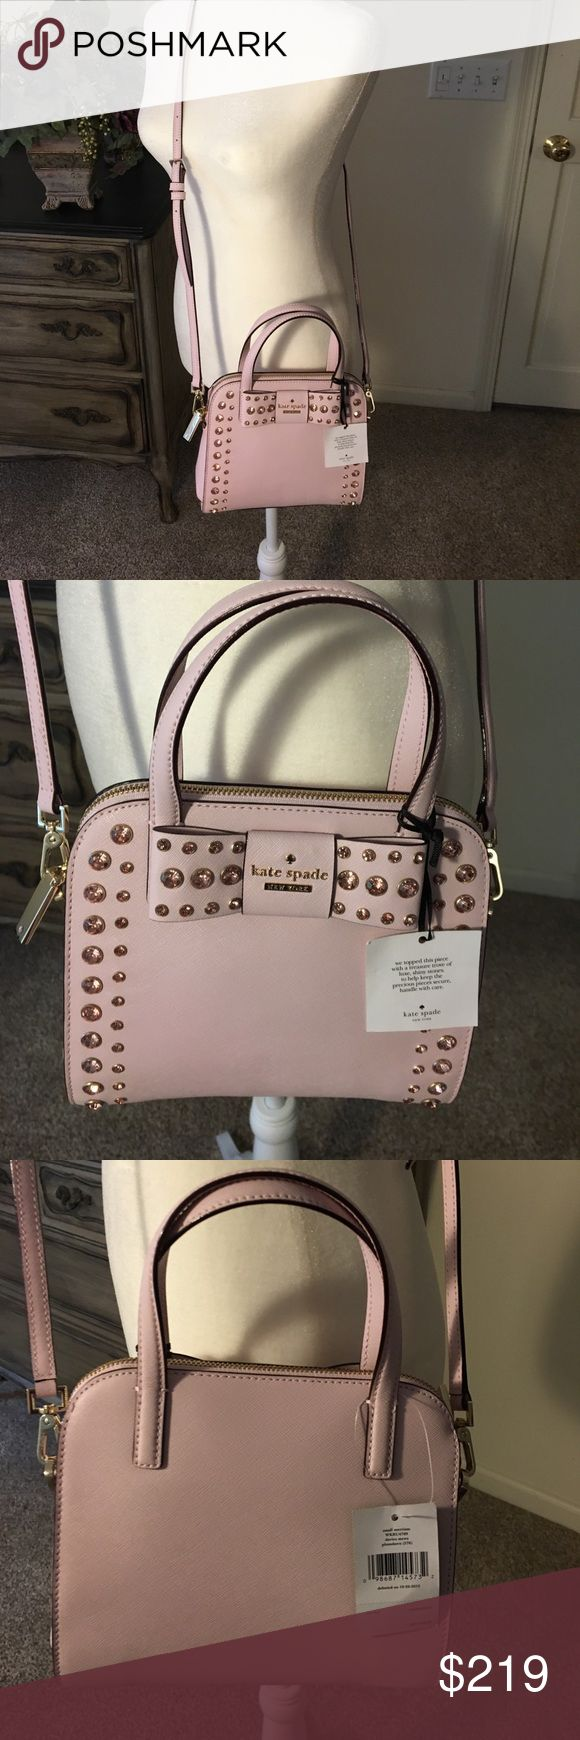 Kate Spade Small Merriam Davies Mew pink purse New with tags! Kate Spade Small Merriam Purse Davies Mew pattern in plum dawn (576) light pink color. Gorgeous! Set in stones pink crystals! Beautiful bag. Matching wallet in separate post. I priced low! Bundle and save 10%!! Measures 8.5 by 8. kate spade Bags Crossbody Bags